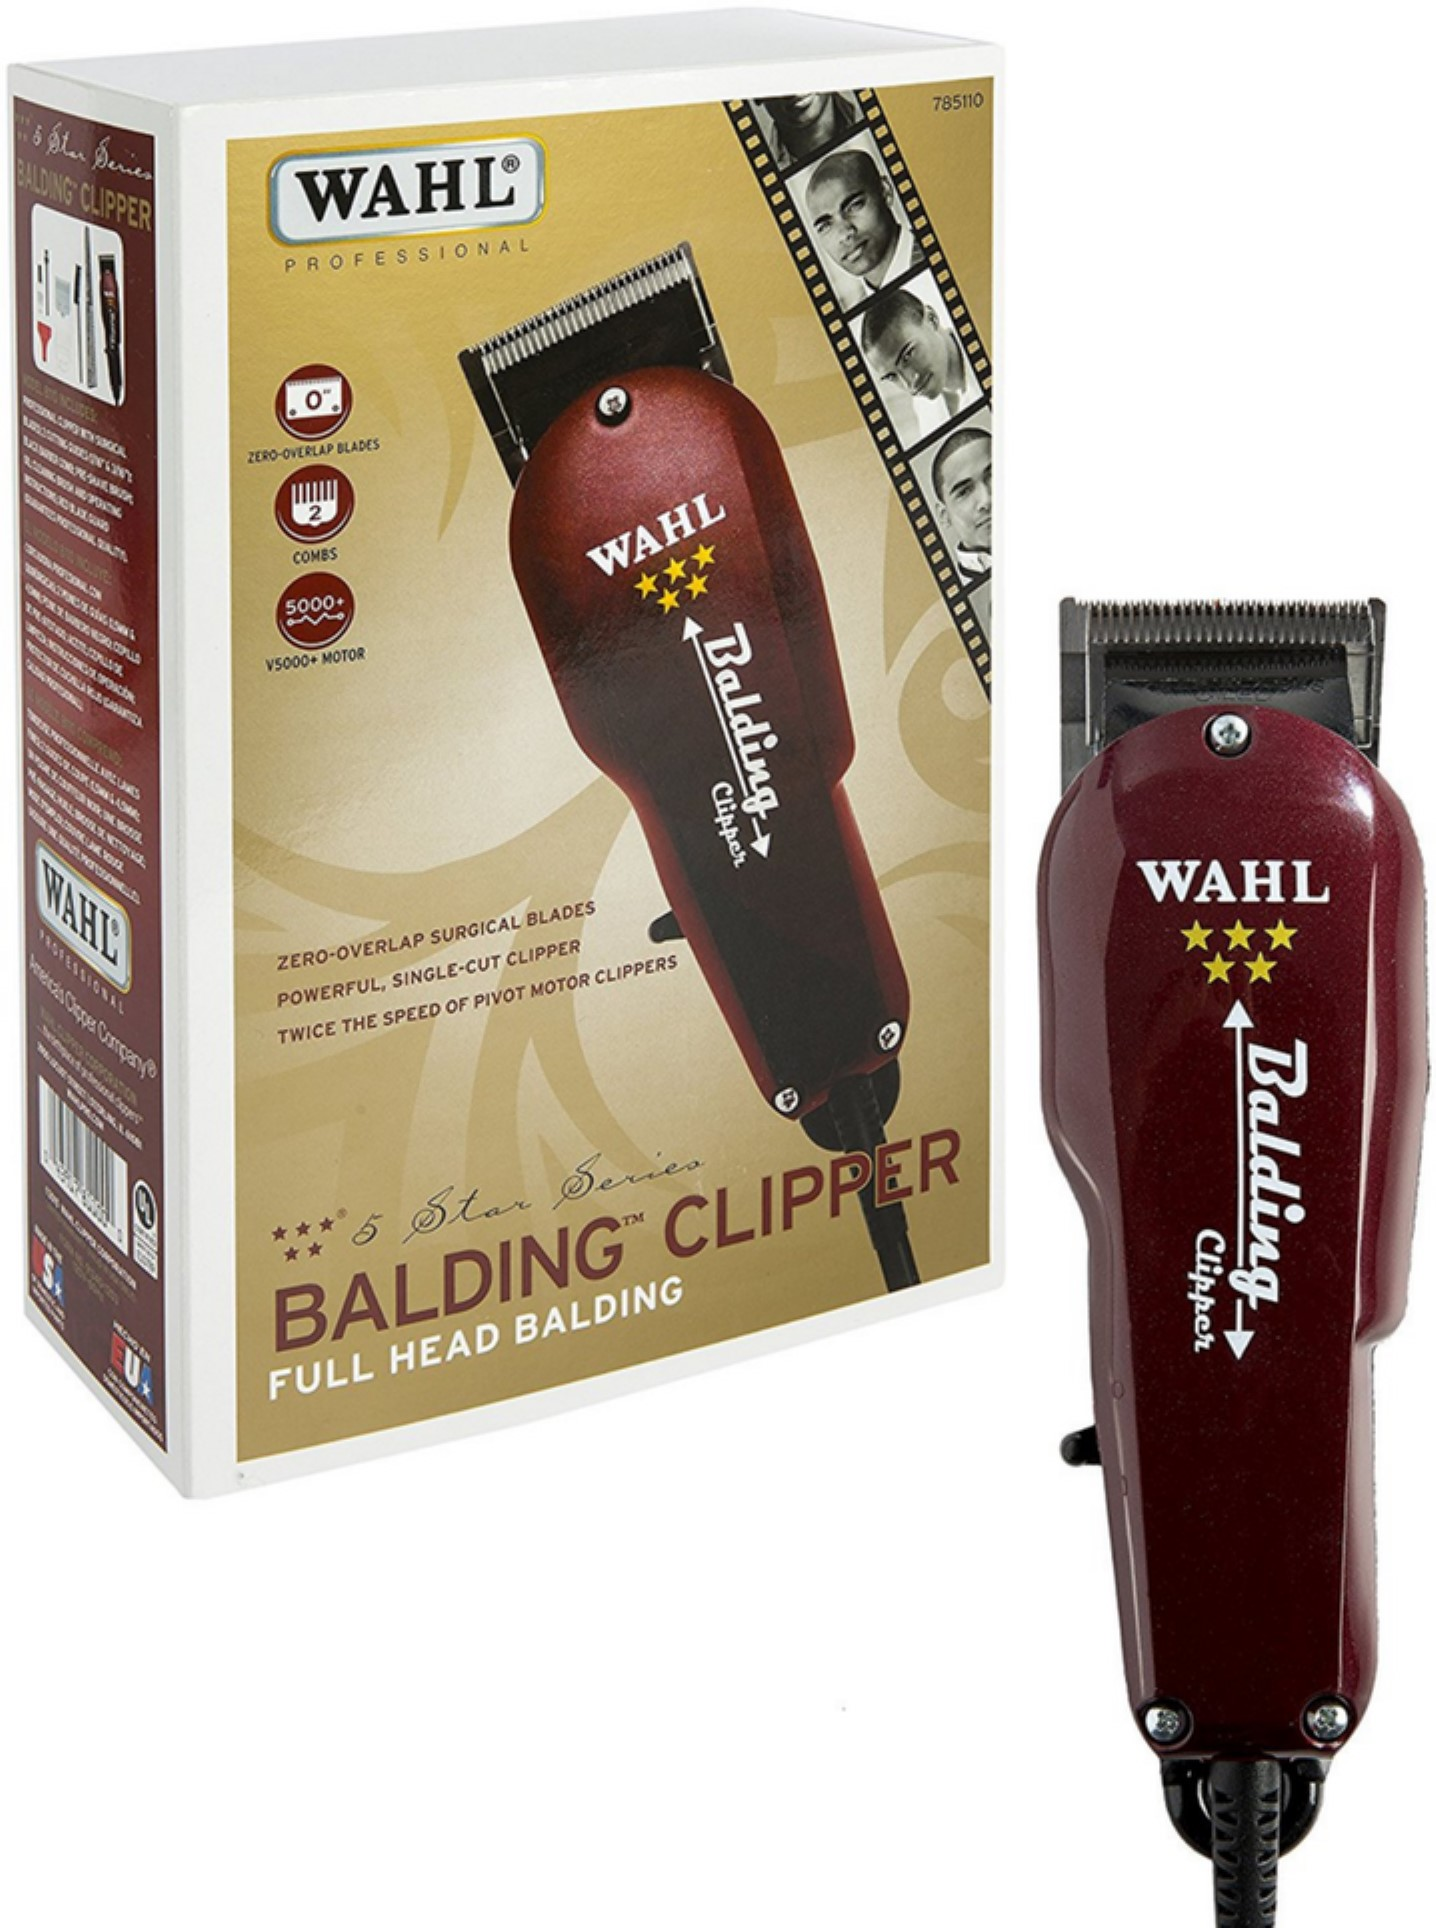 Wahl Professional 5 Star Balding Clipper 8110 1 Ea Classic Series Usa